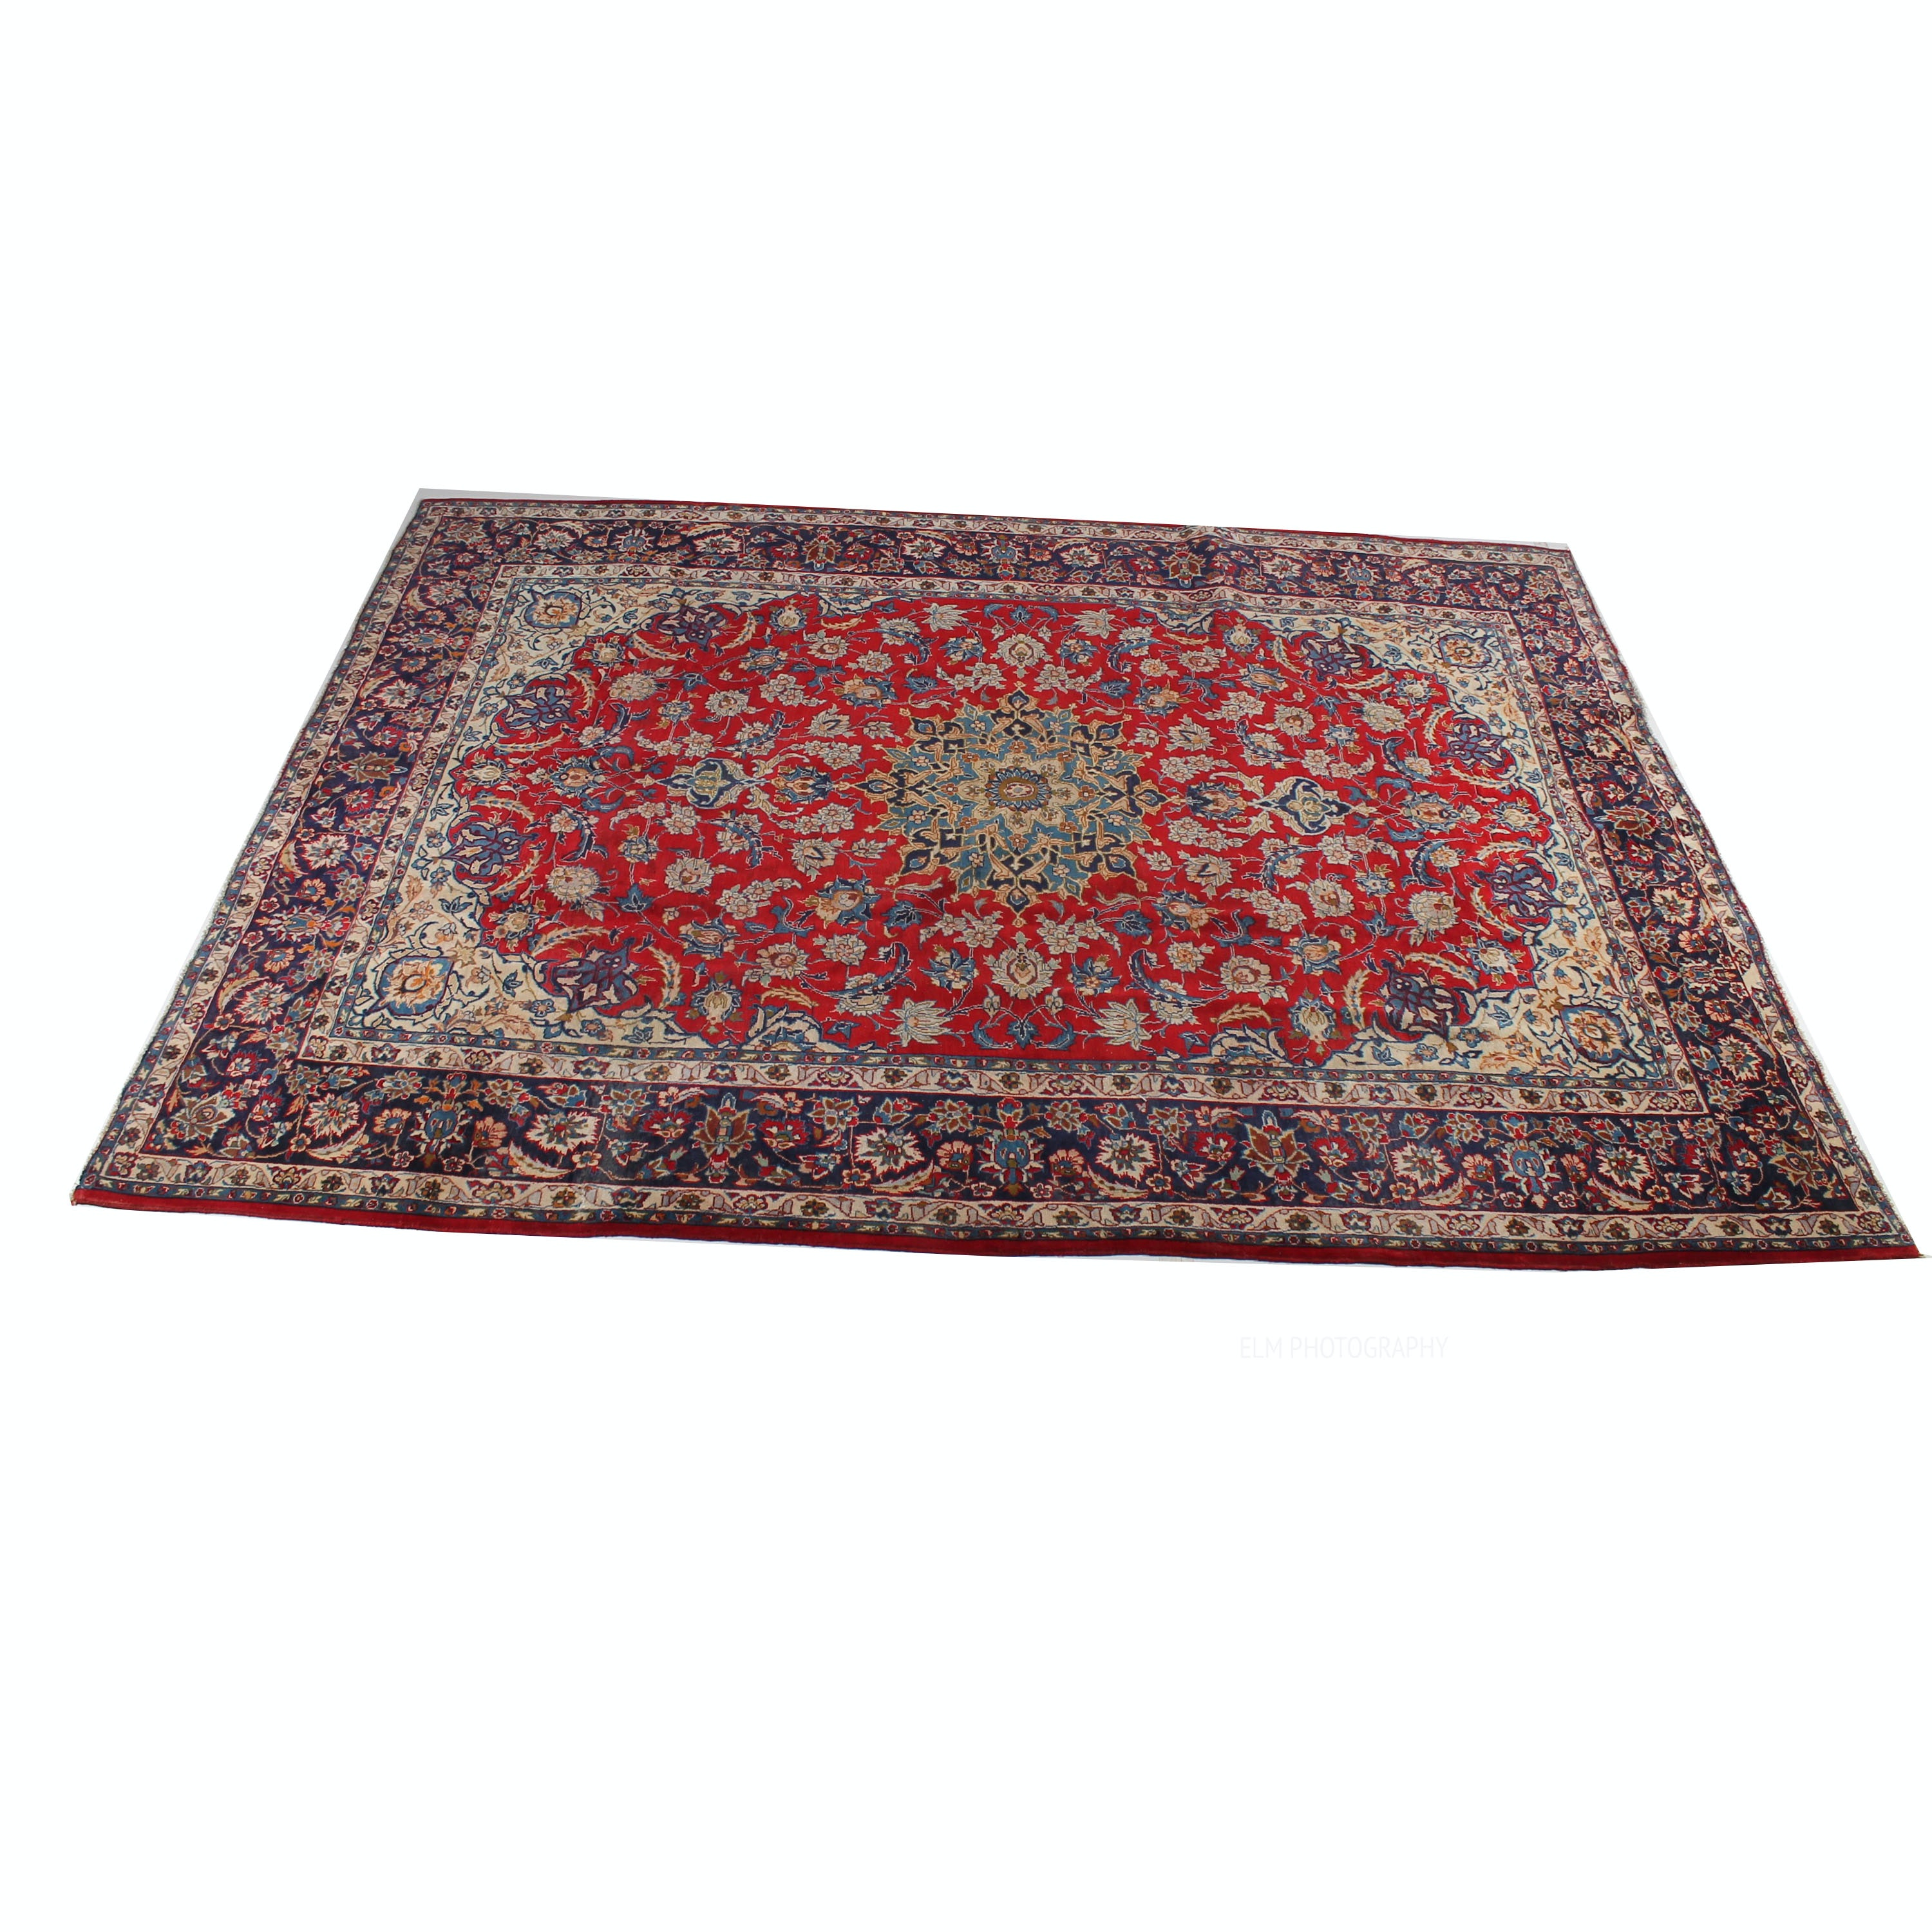 Semi-Antique Hand-Knotted Persian Qum Room Size Rug